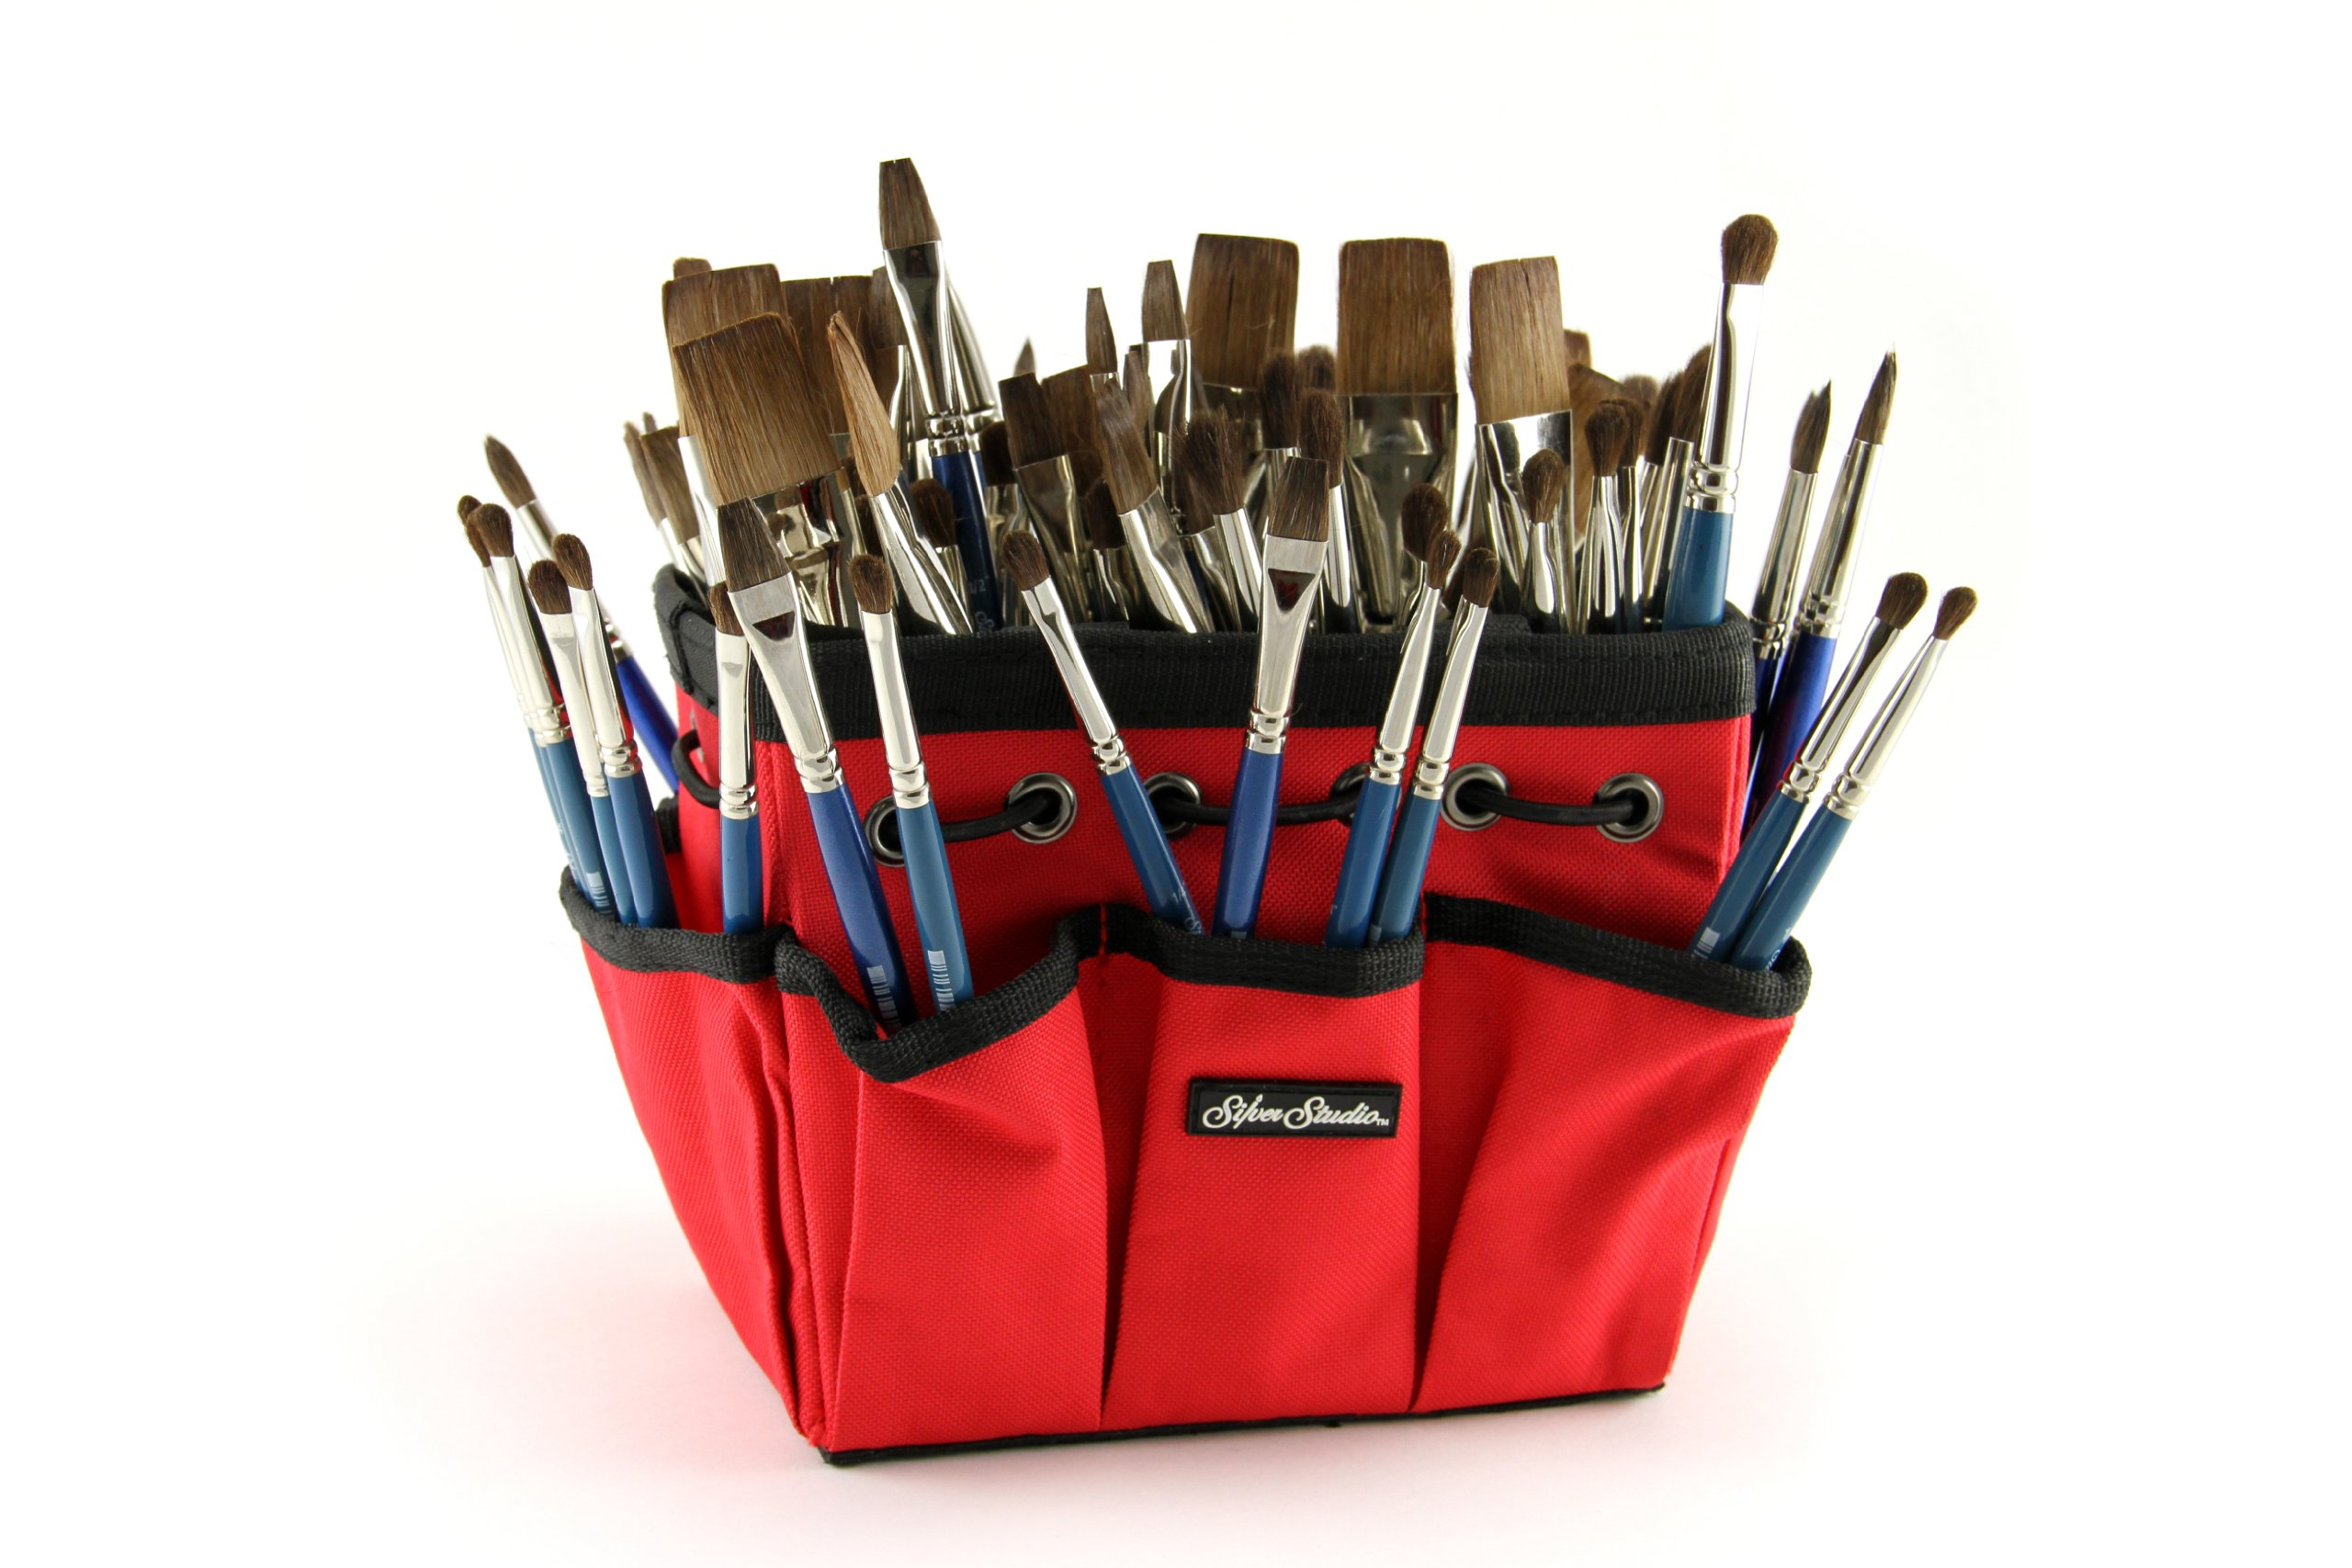 Silver Brush CP-5390S Camel's Short handle Class Pack Hair Assortment with Red Petite Tote, 193 Per Pack